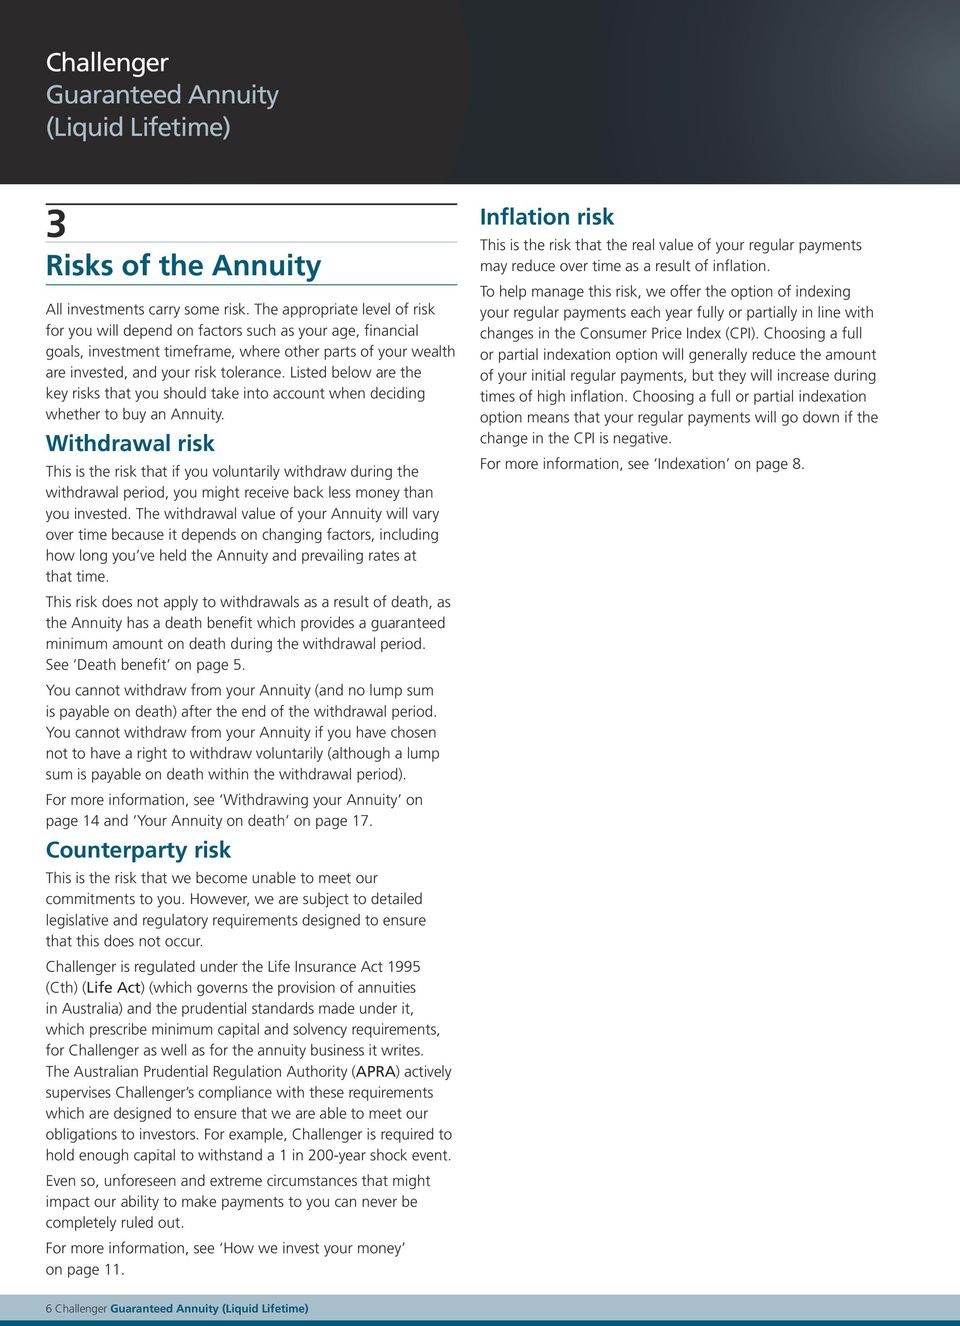 Listed below are the key risks that you should take into account when deciding whether to buy an Annuity.